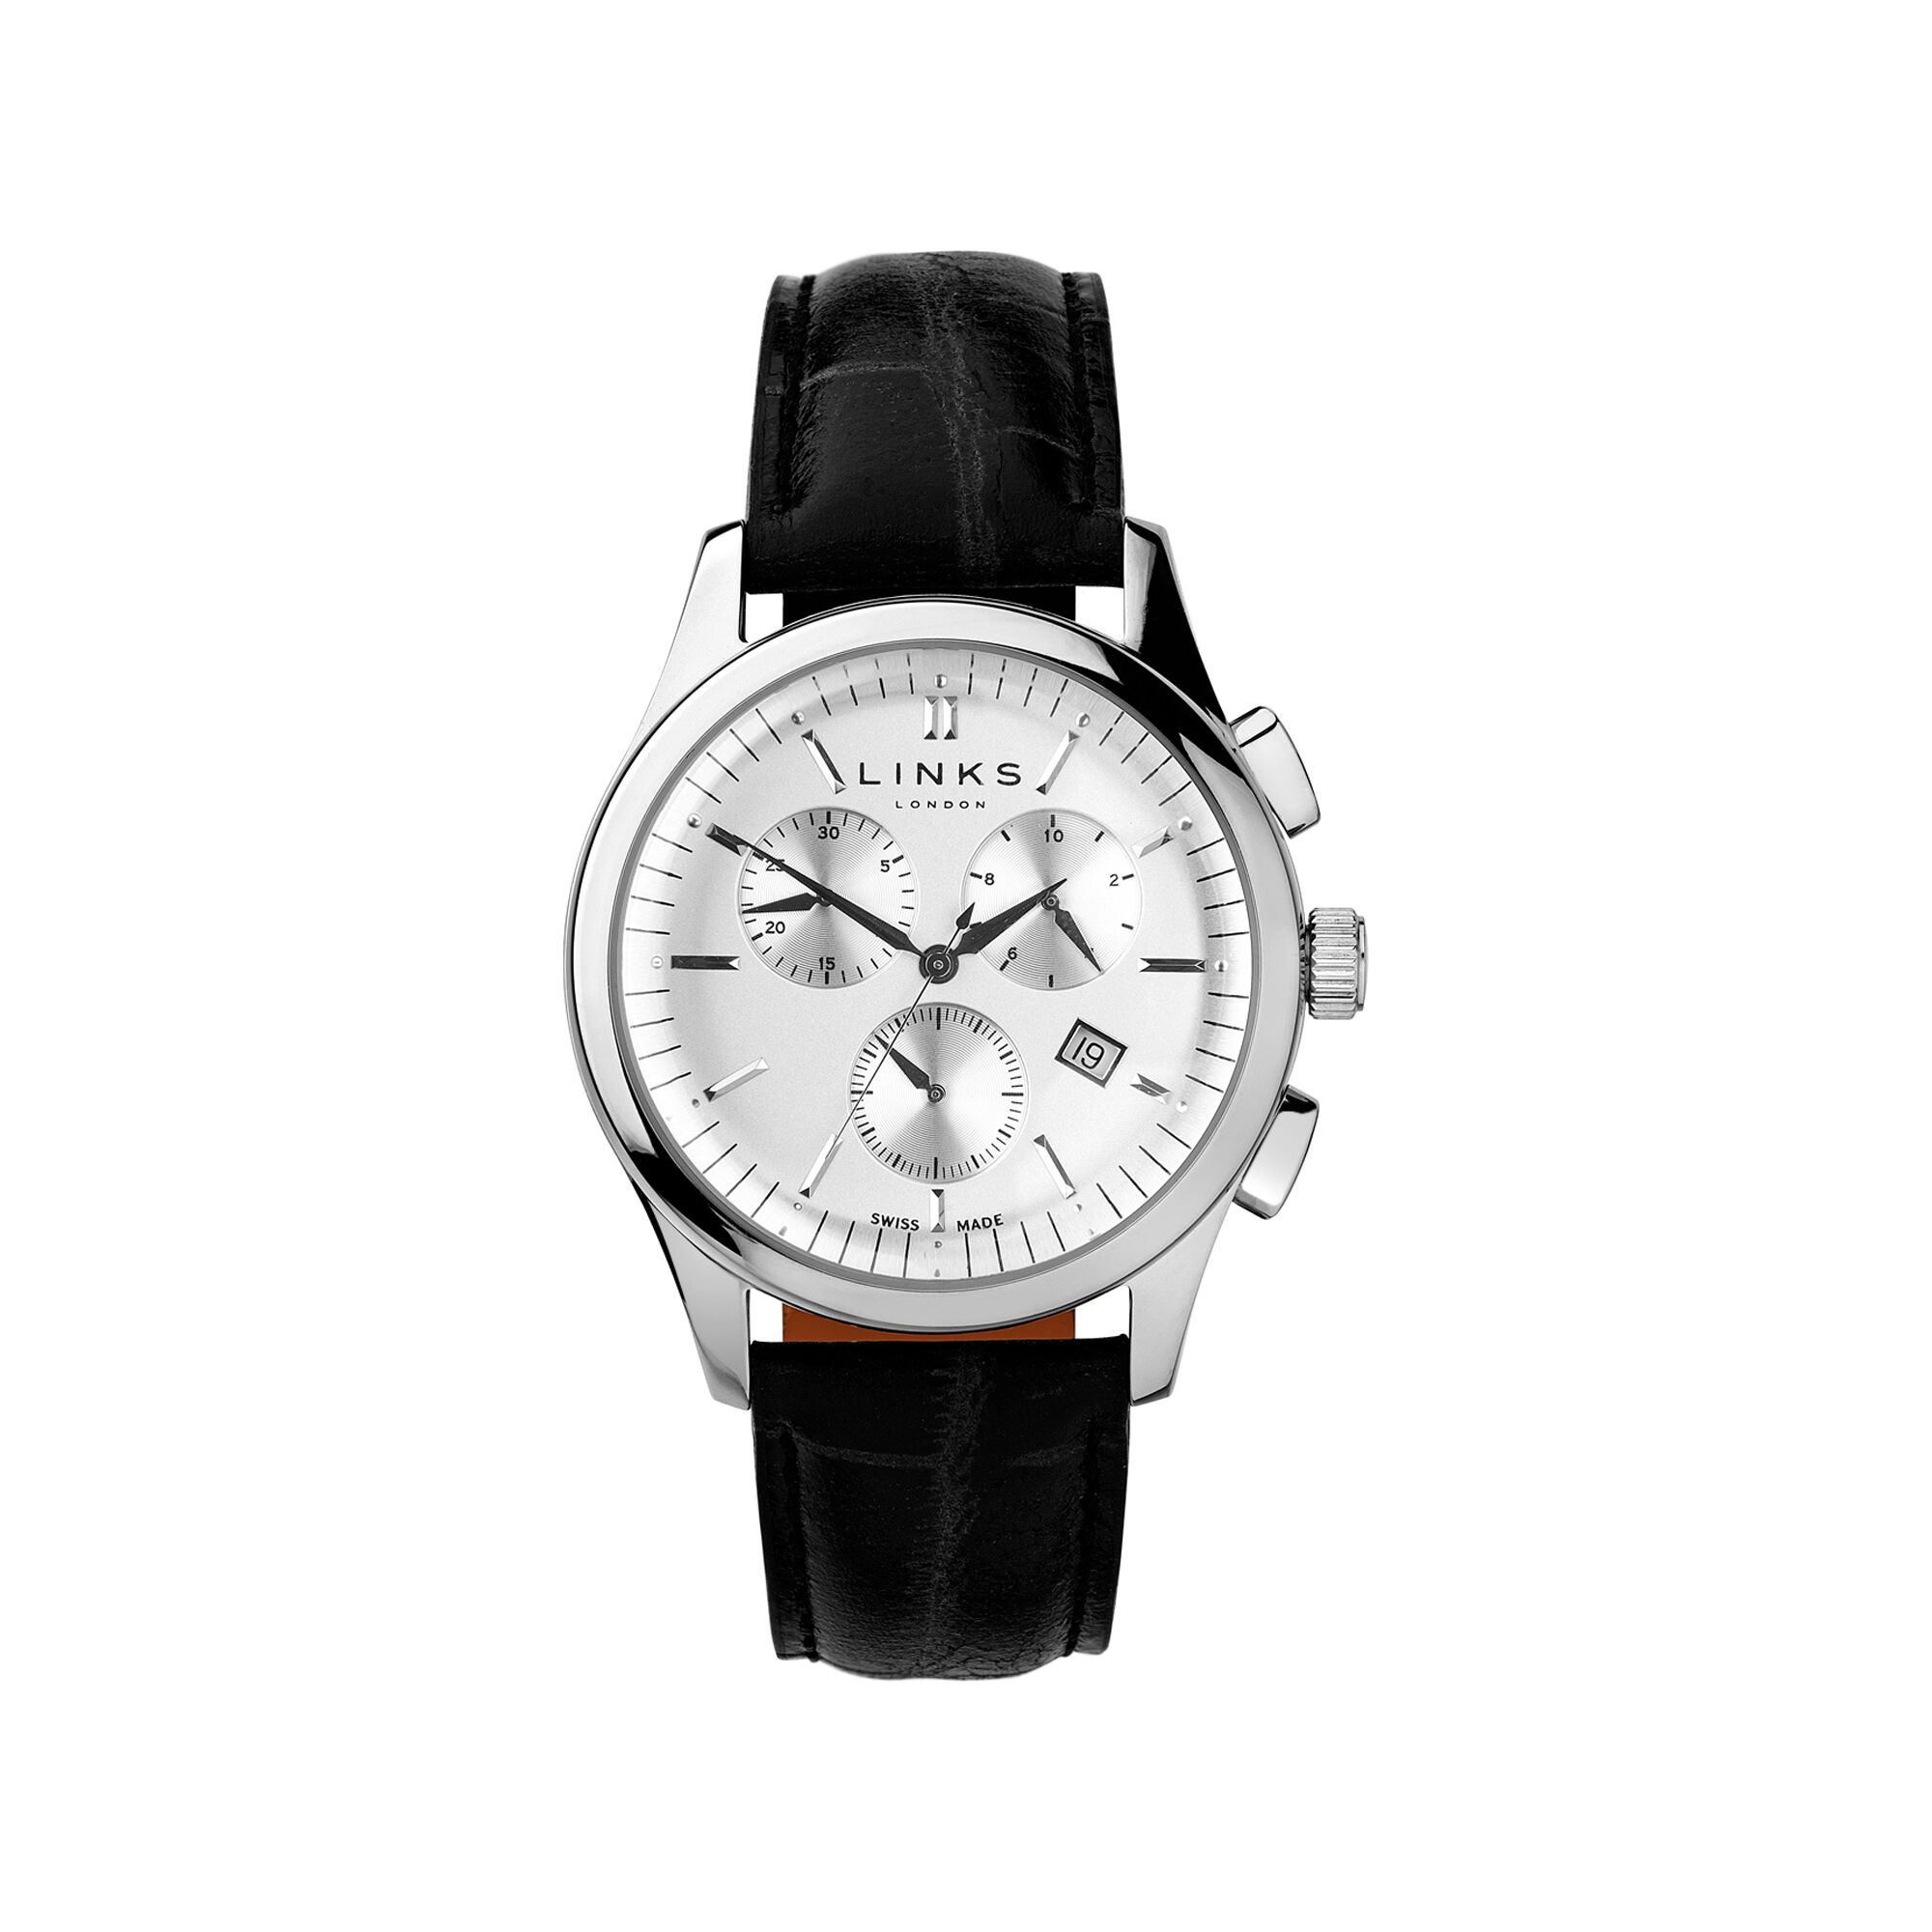 by watch james the jamesmccabe watches london timepieces slim mccabe original product